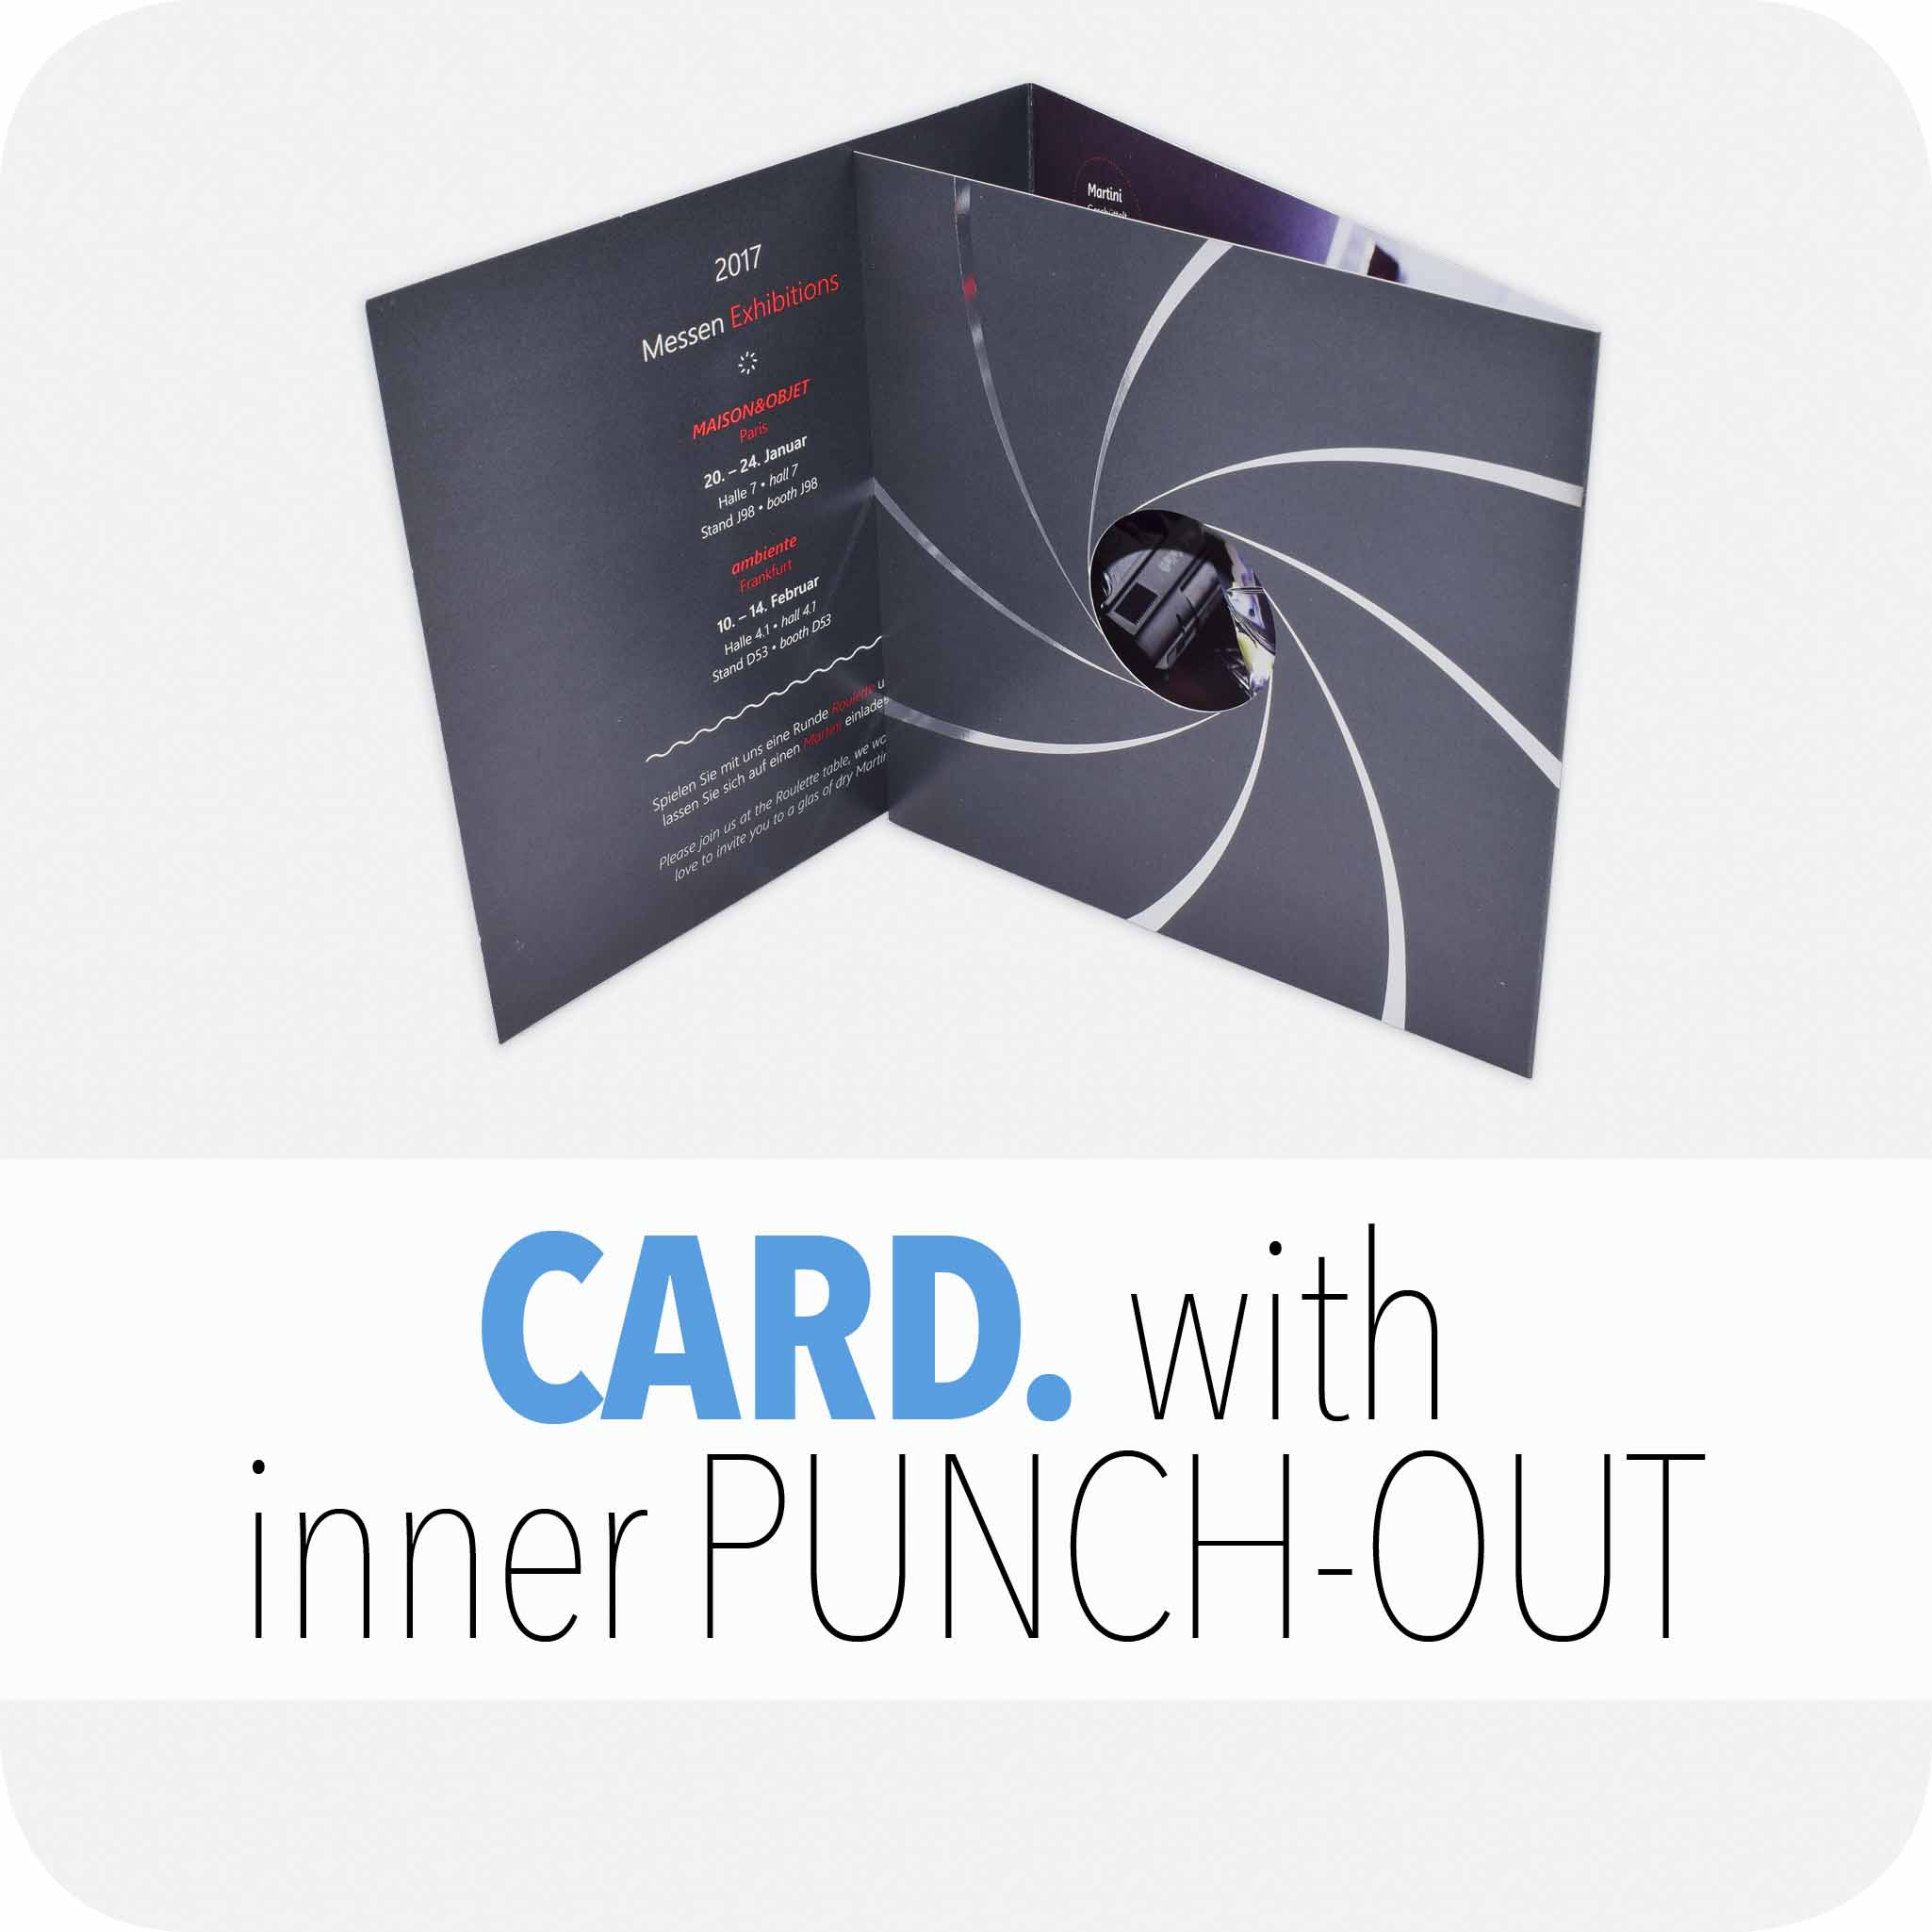 Card with inner punch-out